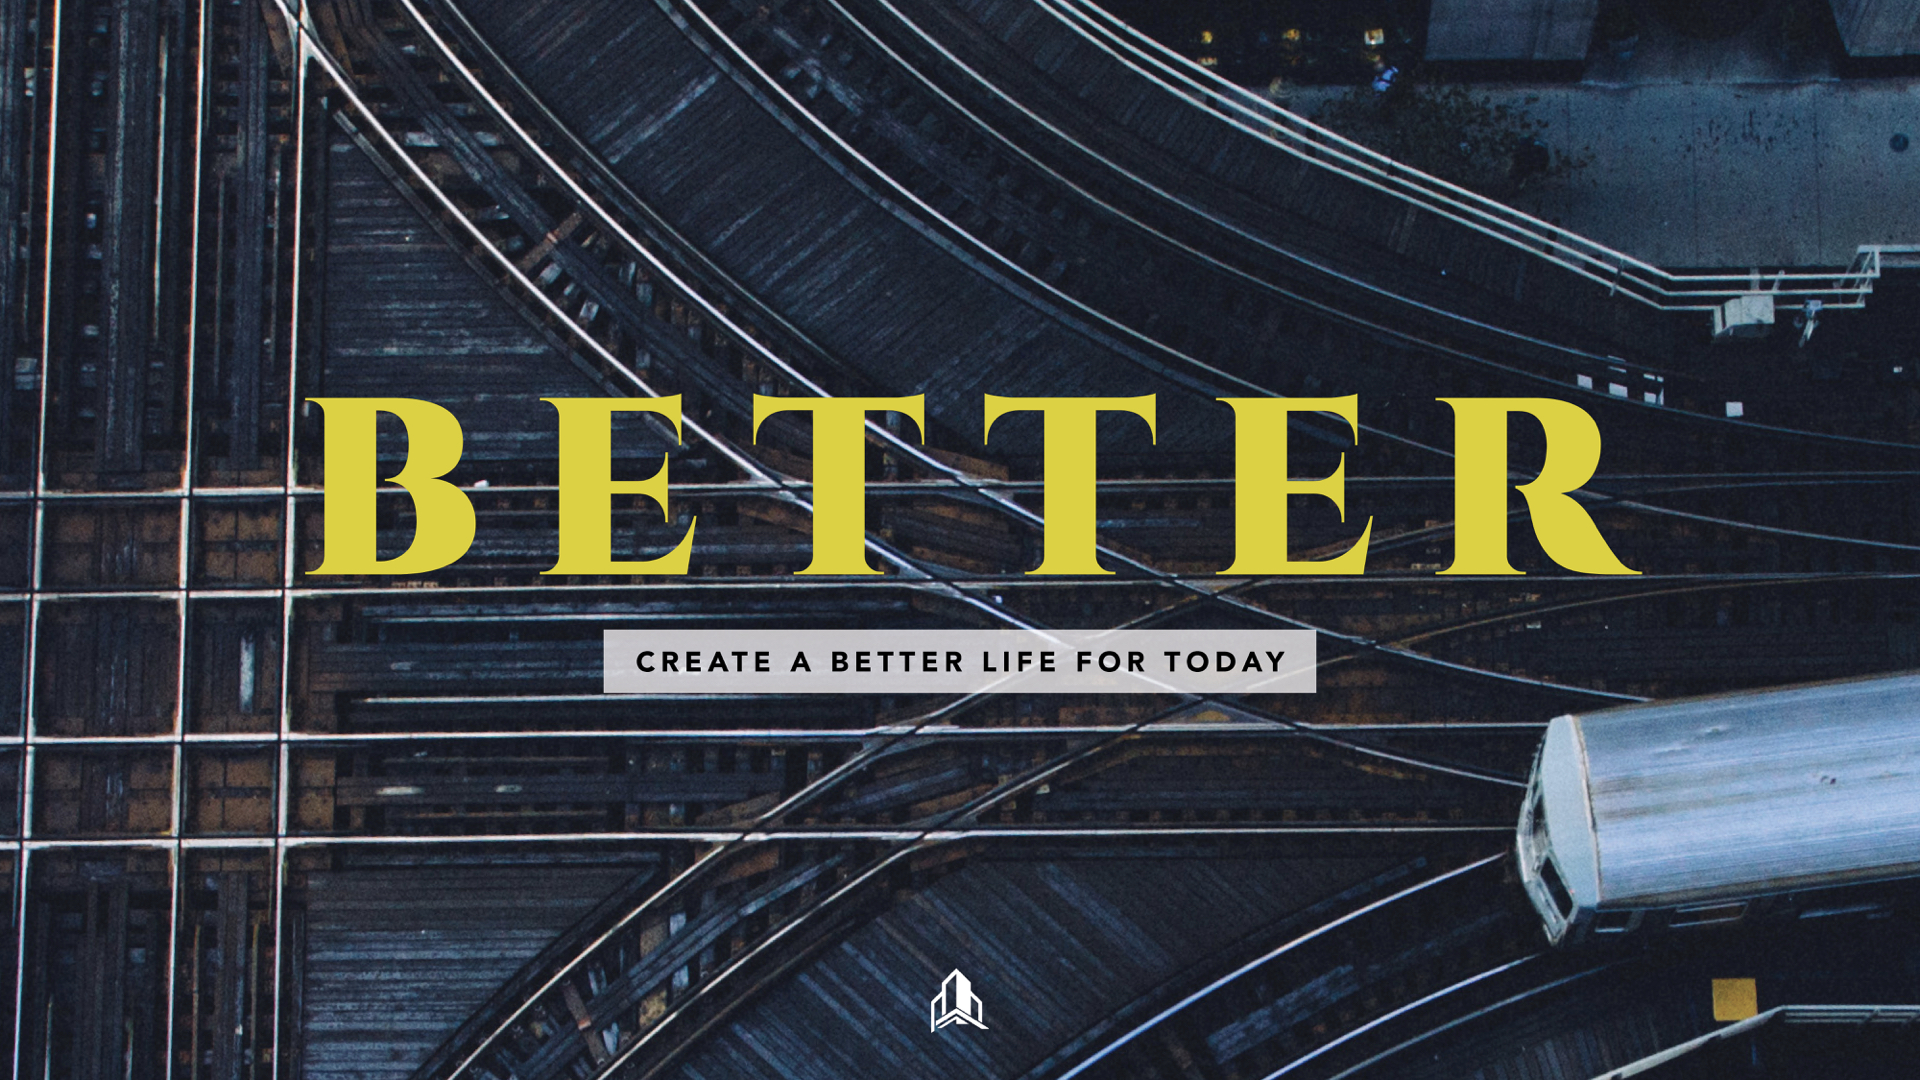 SLIDES_W1 - Better - One Day is Better.001.jpeg